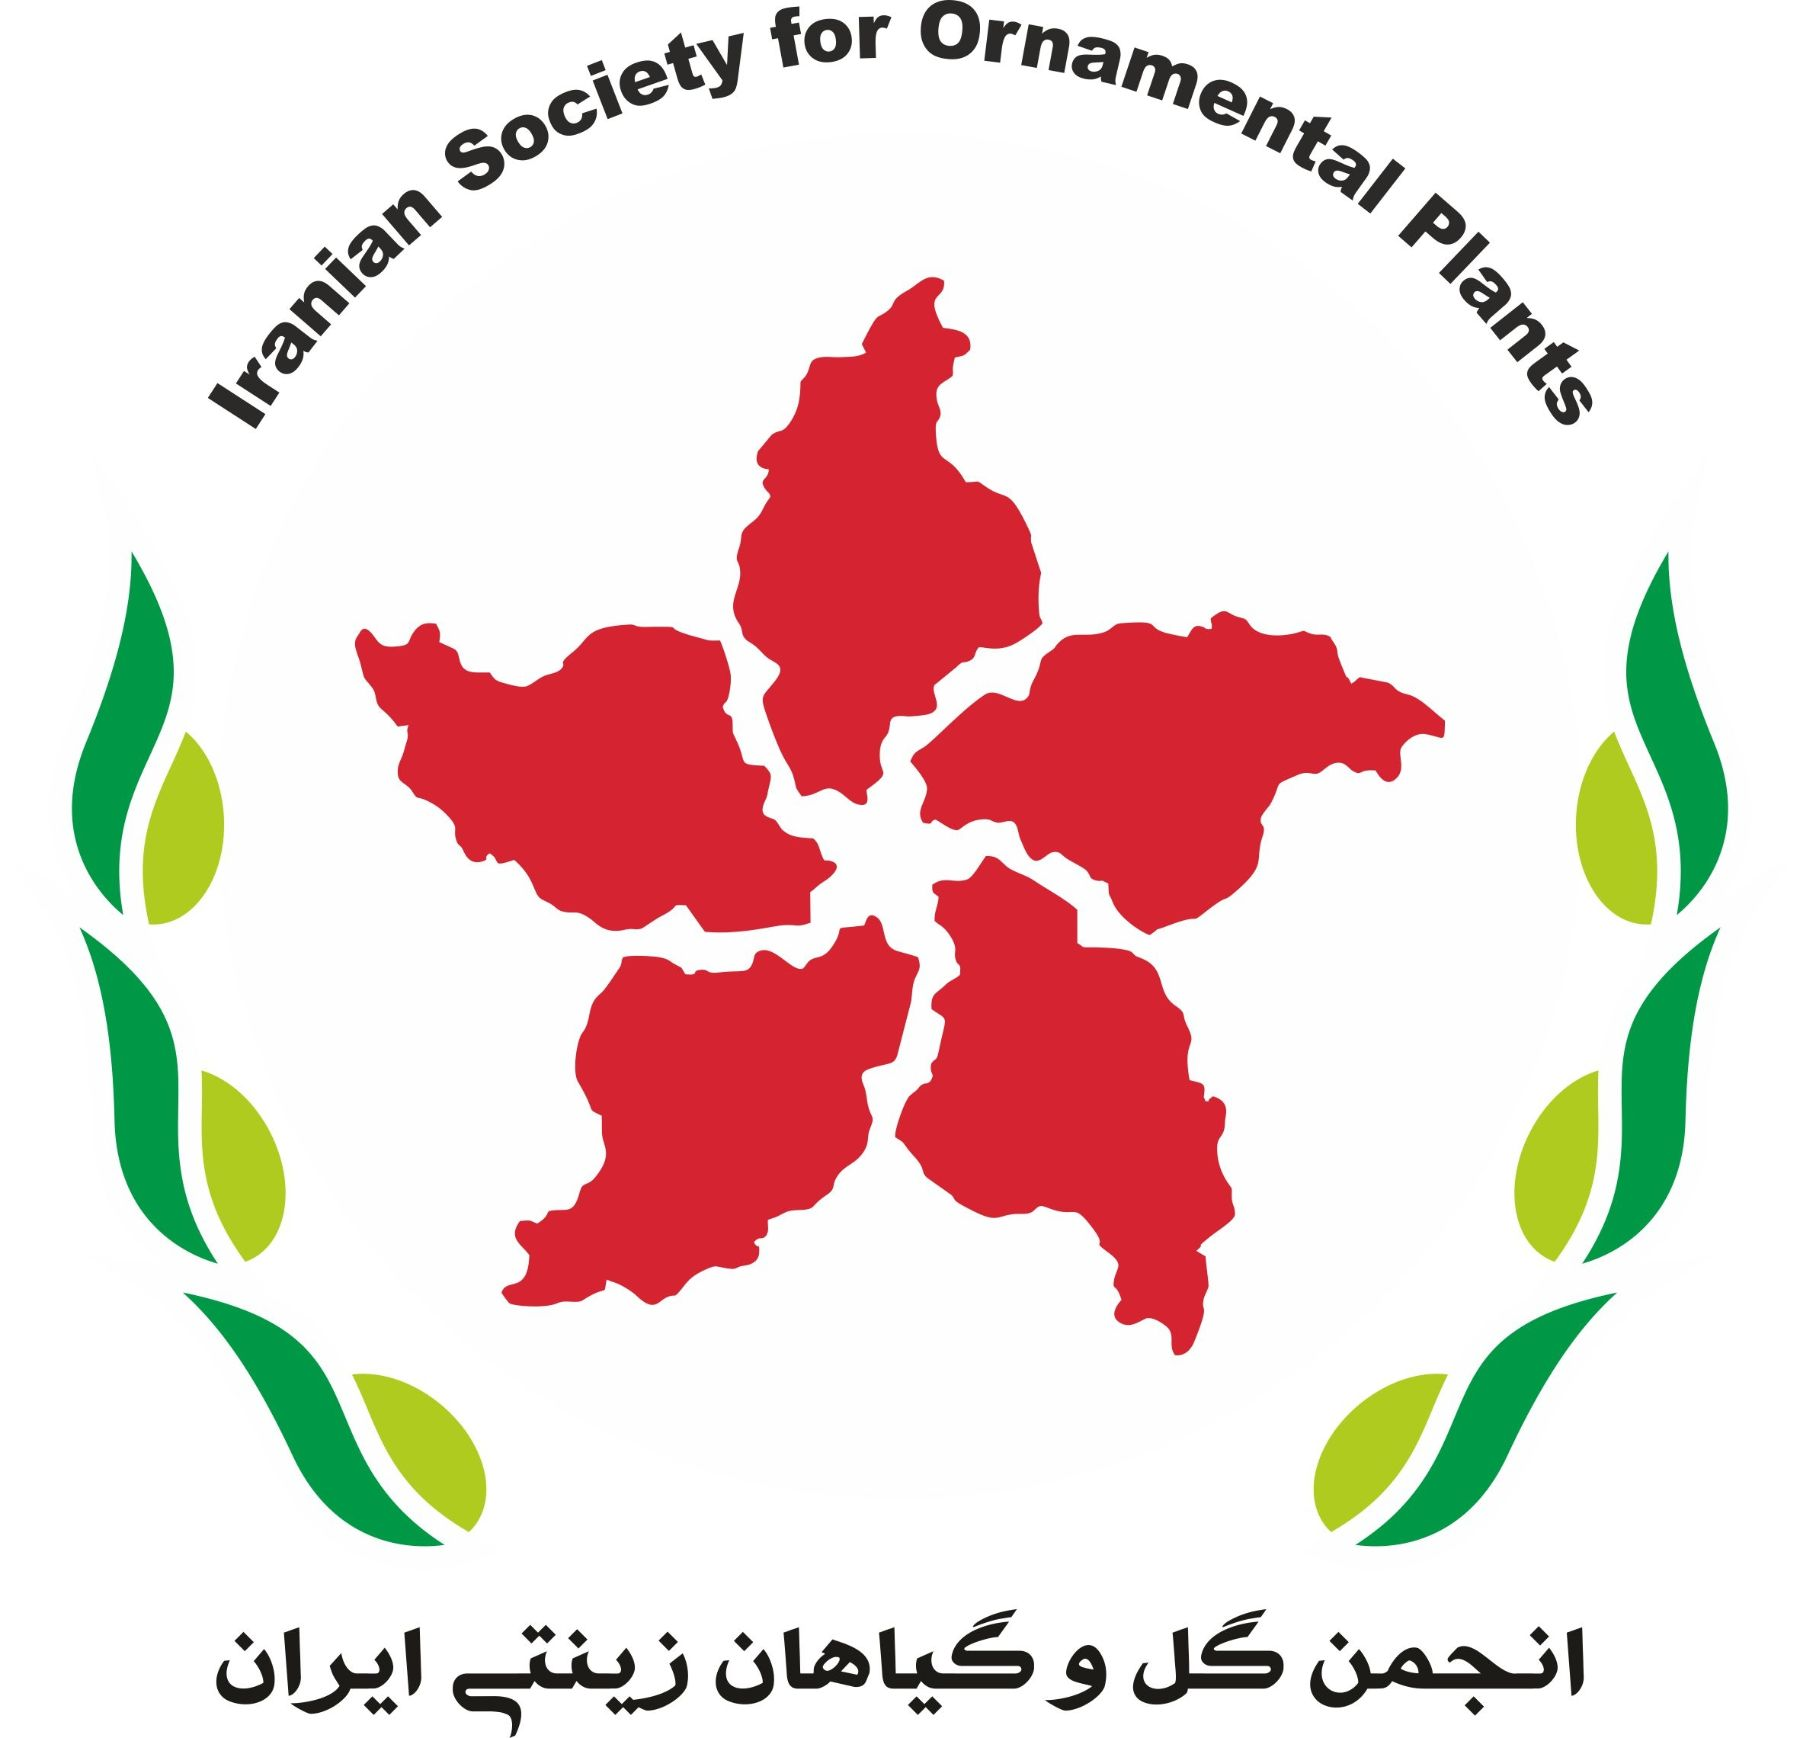 Iranian Society for Ornamental Plants logo